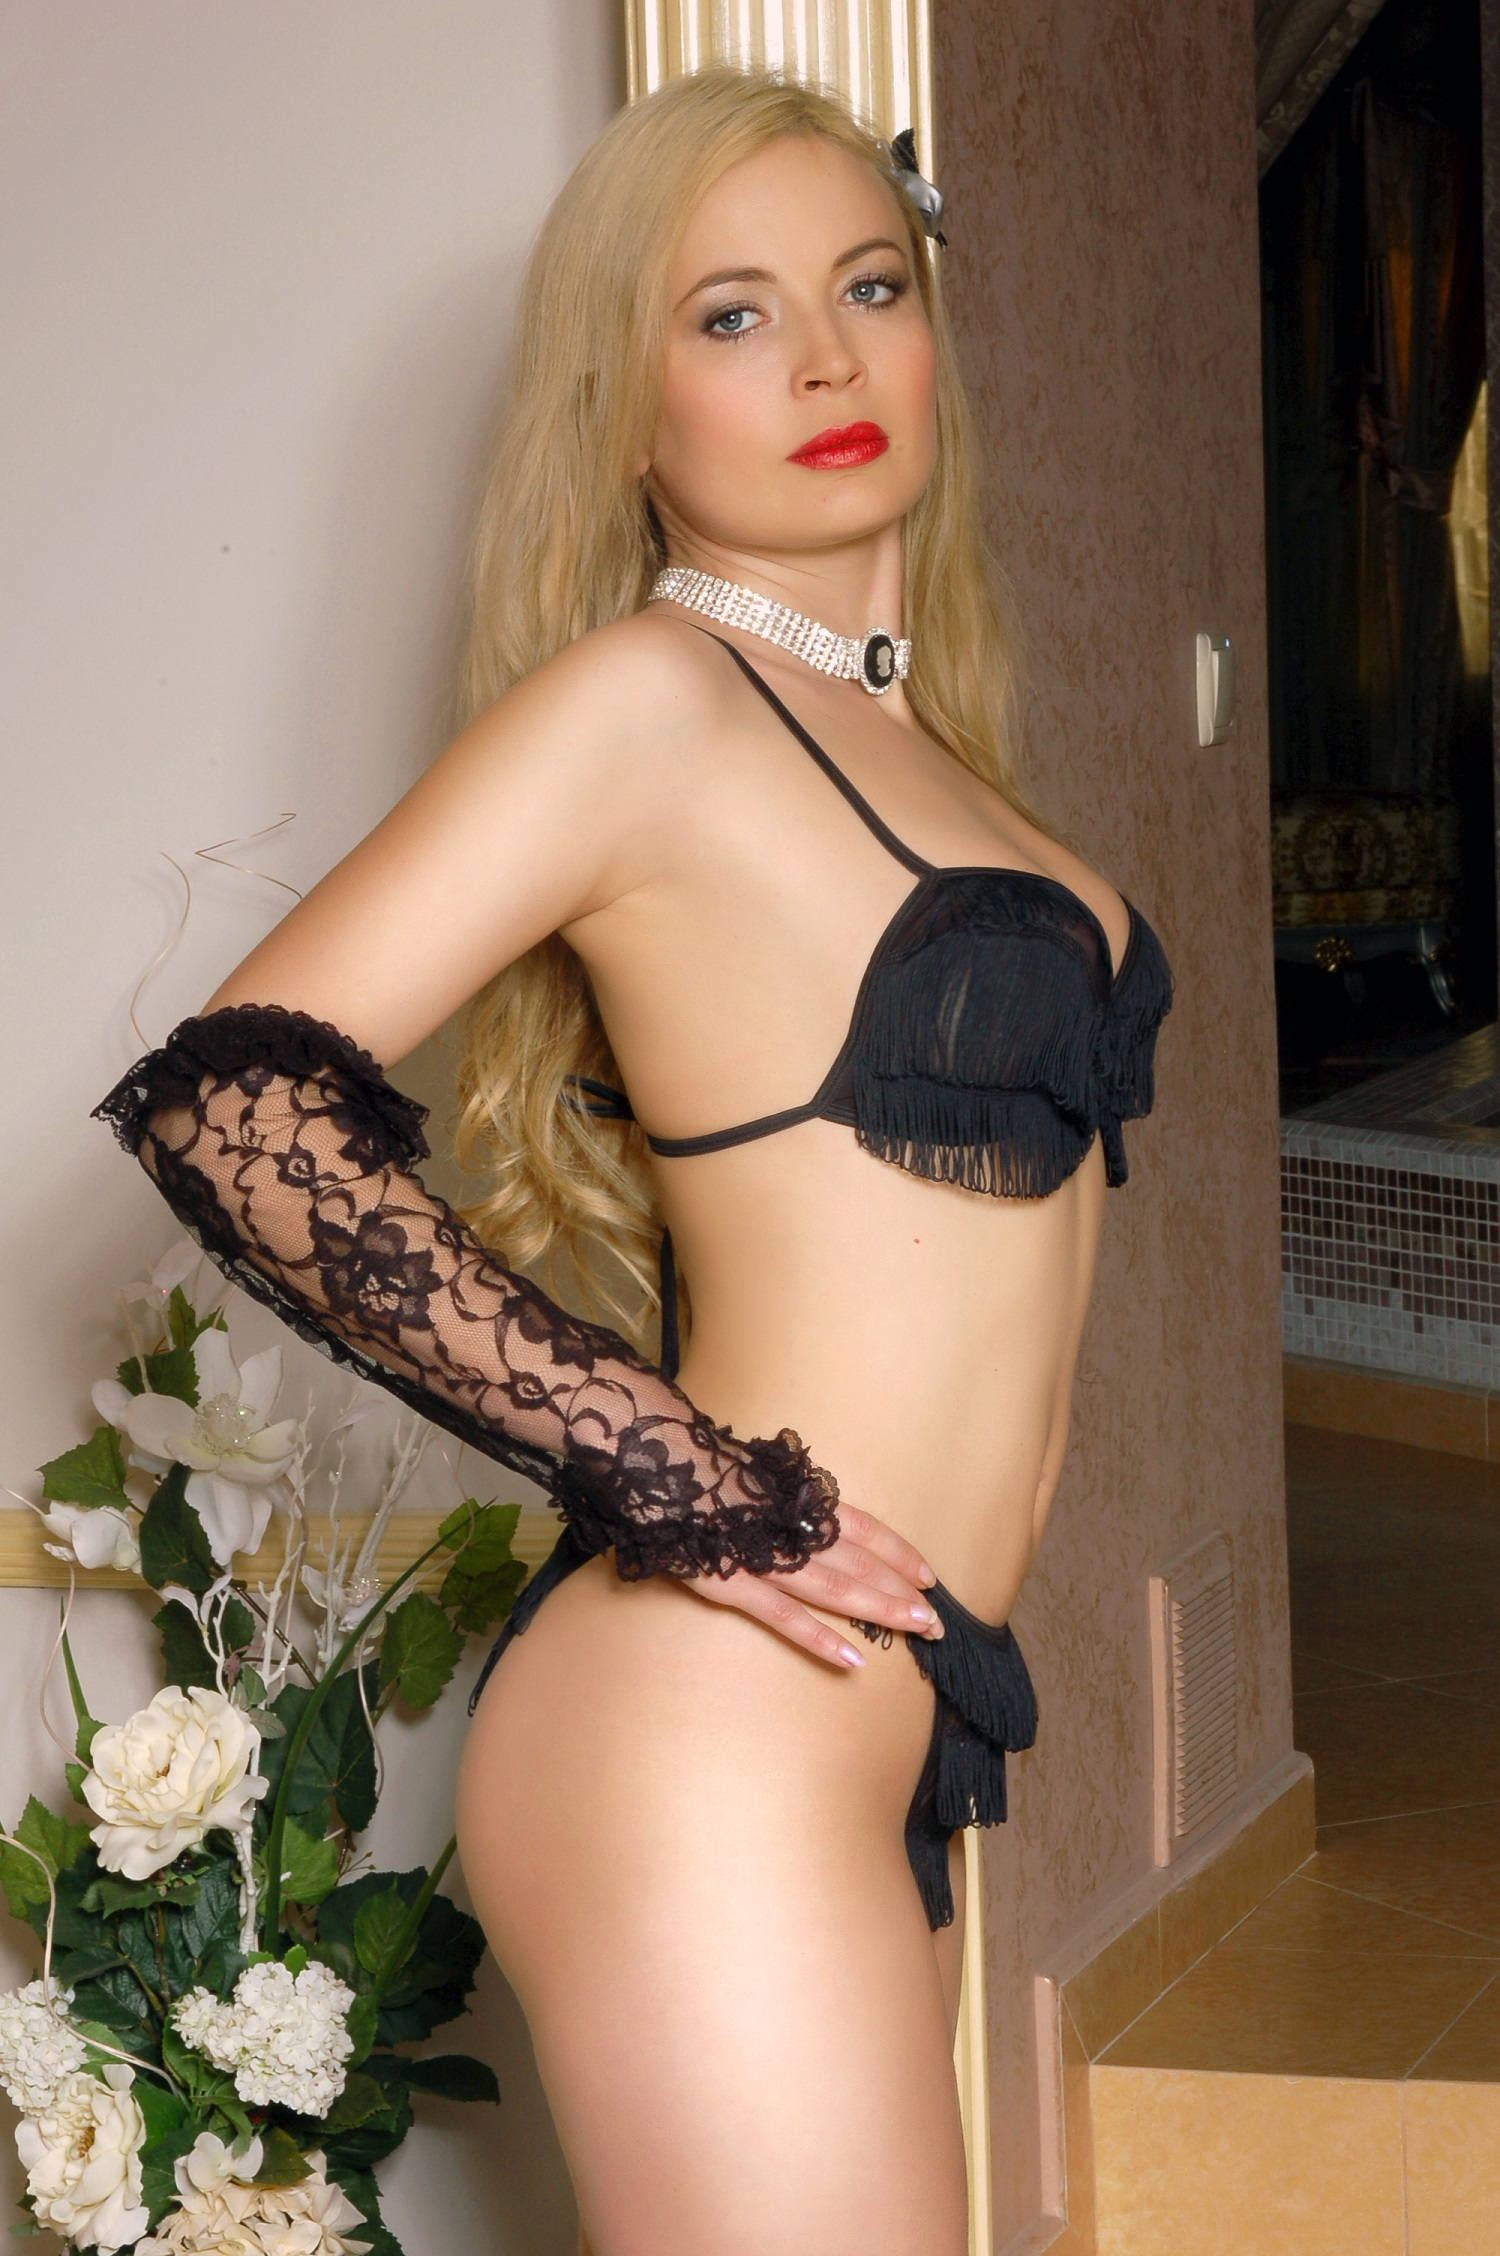 norske sex filmer independent escort russia